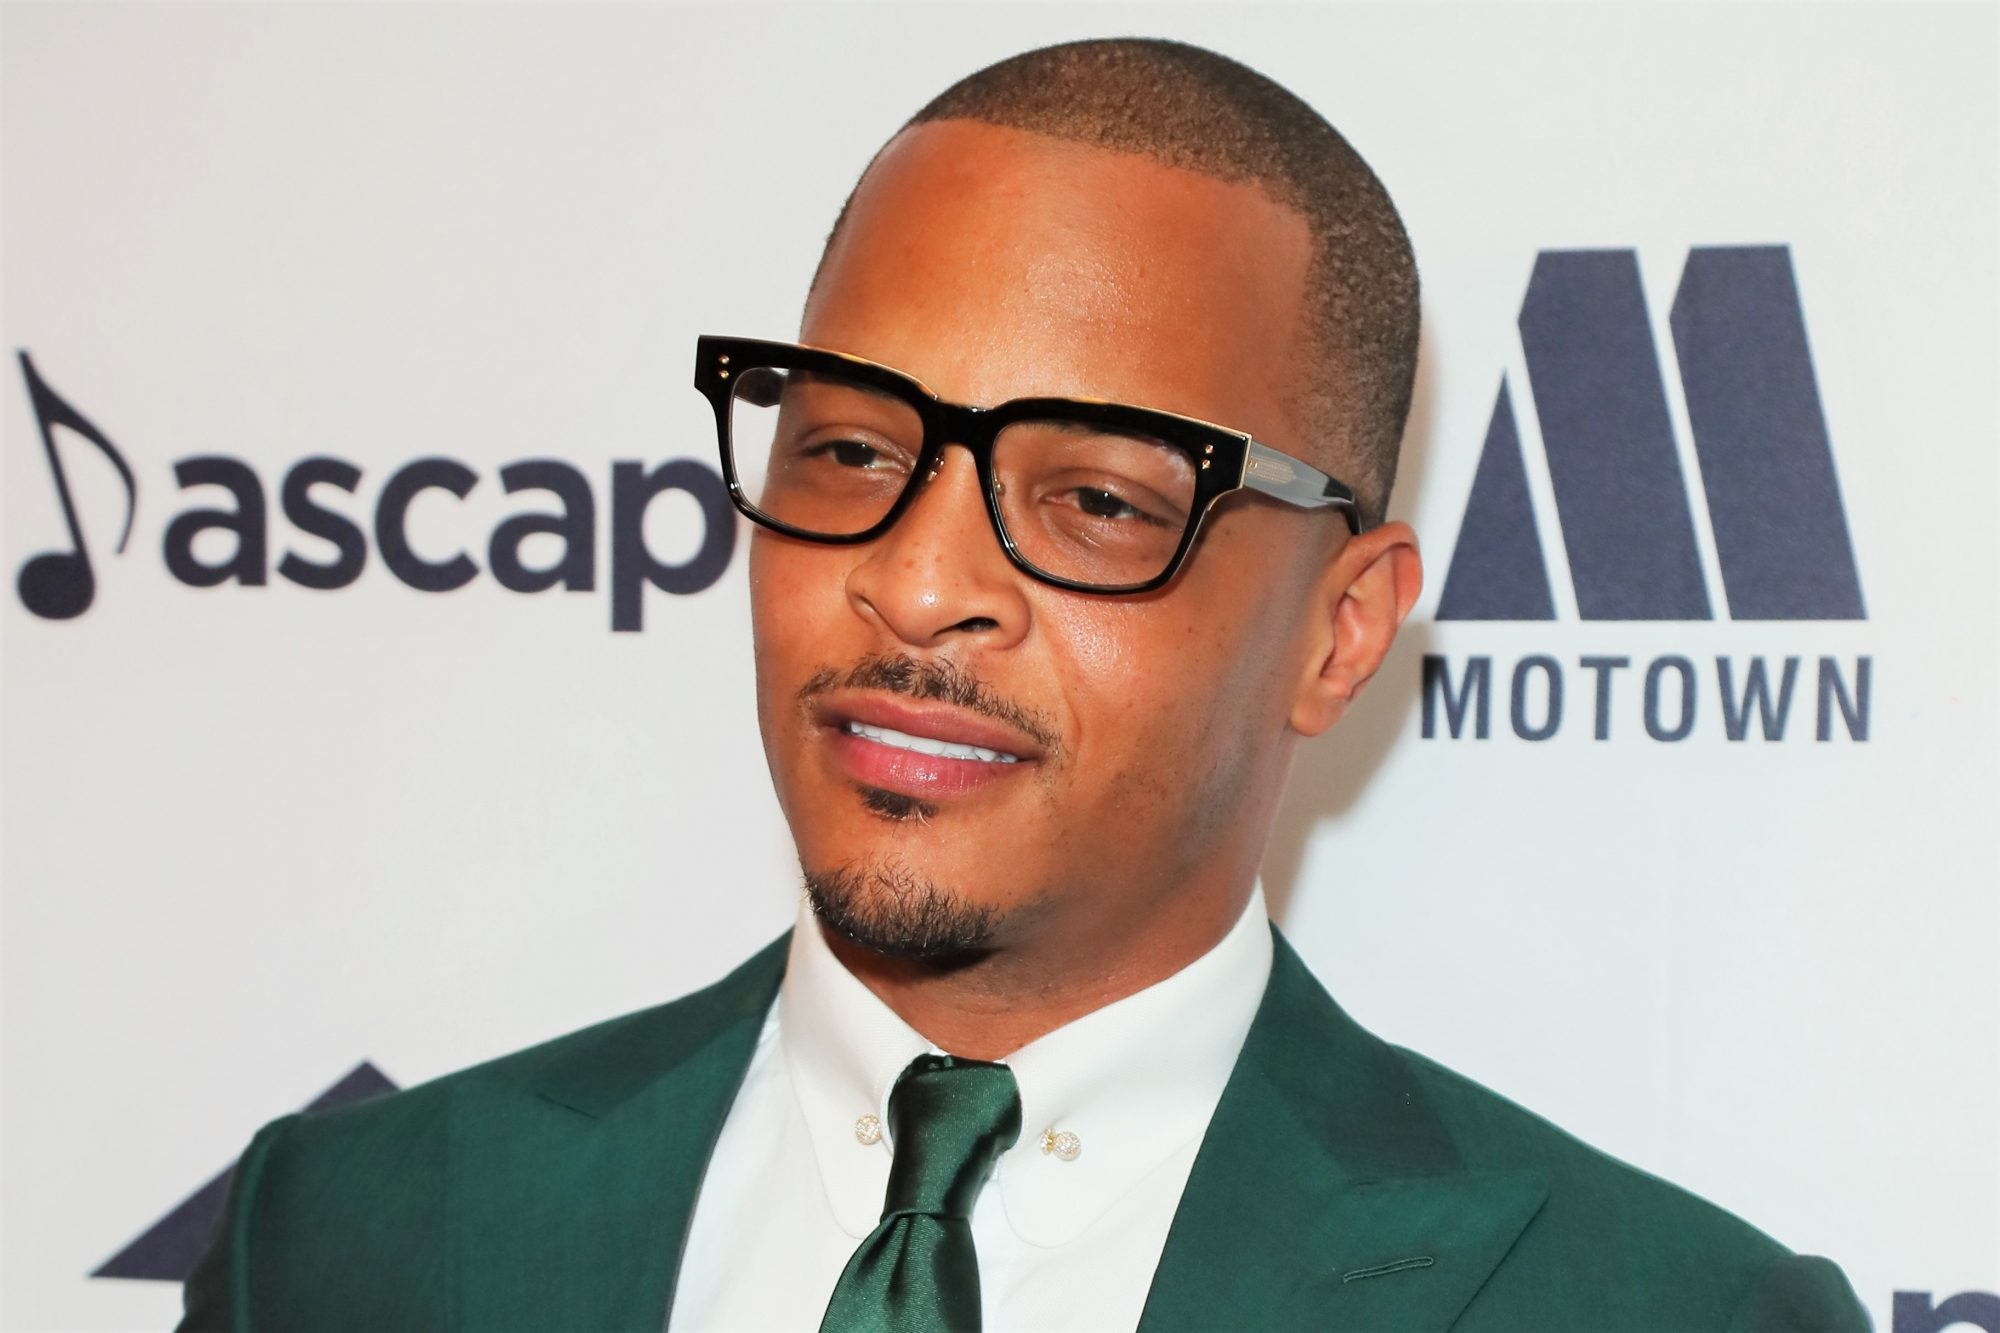 Rapper T.I. wearing glasses in Green suit at 2019 ASCAP Rhythm and Soul Music Awards